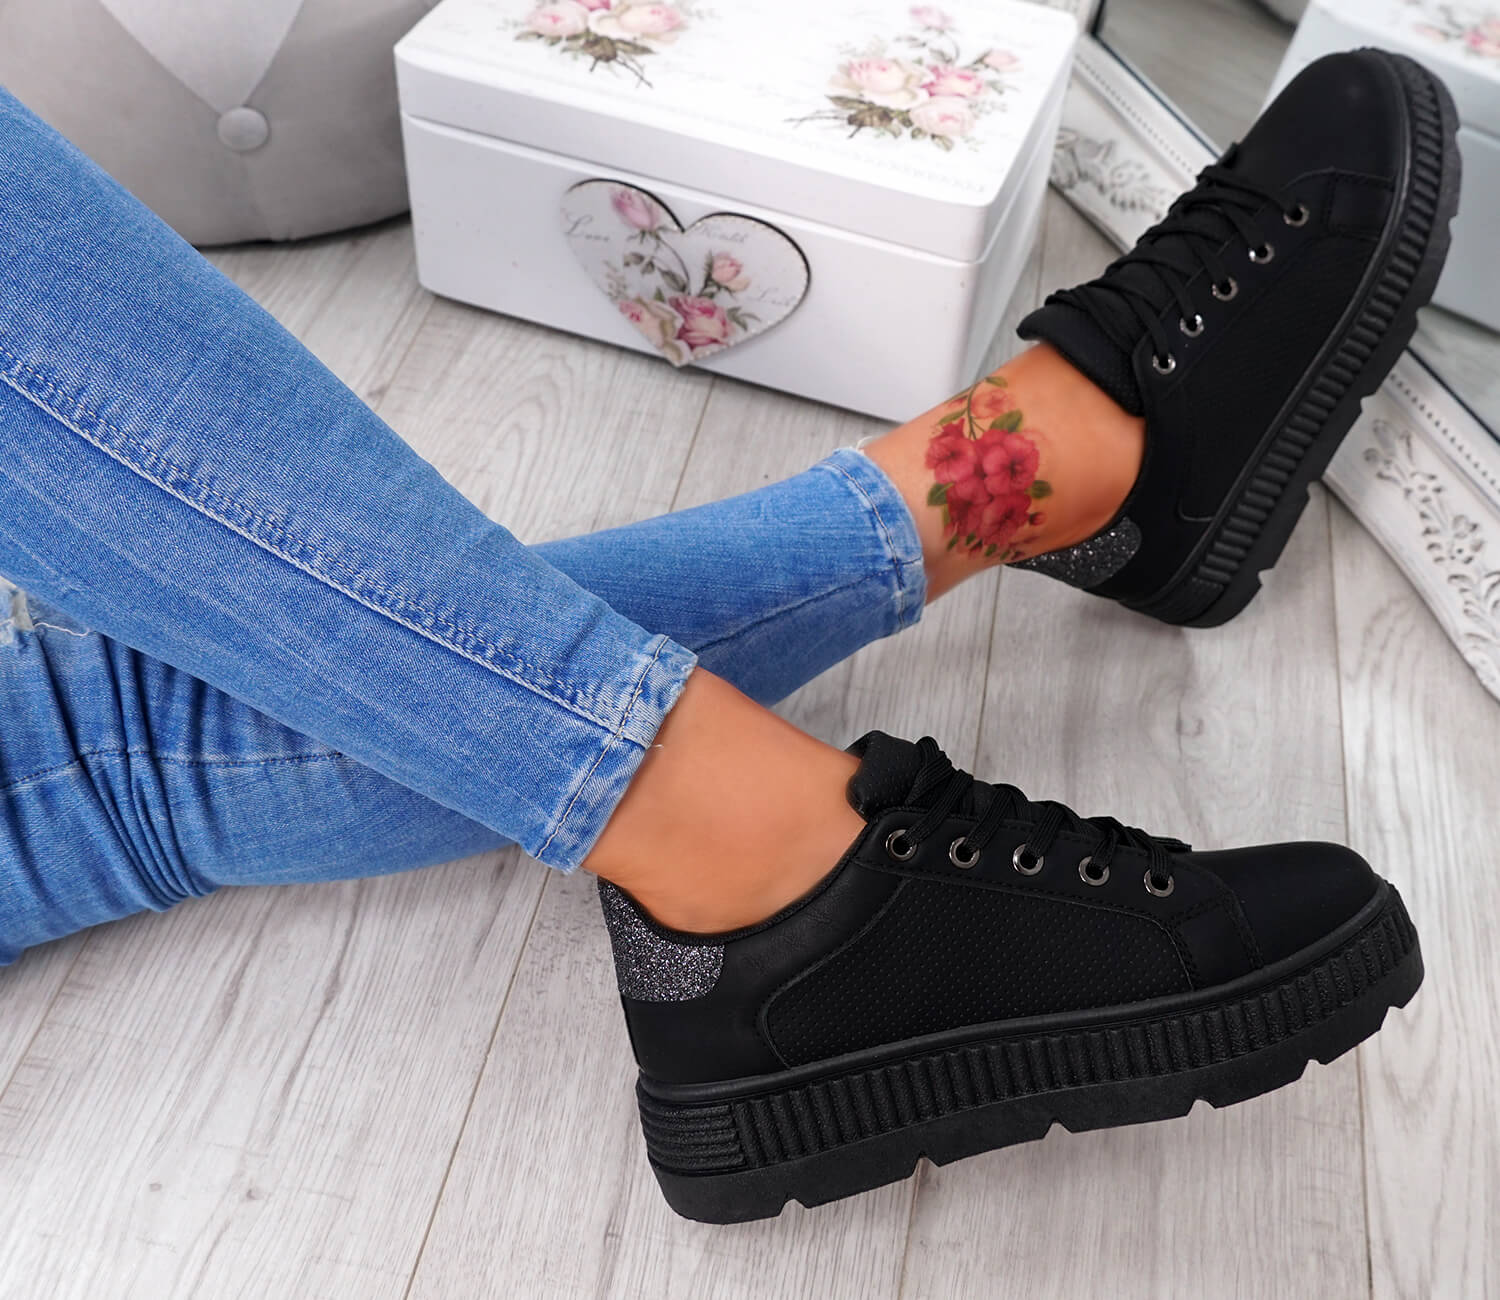 WOMENS-LADIES-PLATFORM-TRAINERS-LACE-UP-GLITTER-SNEAKERS-SHOES-SIZE-UK thumbnail 8